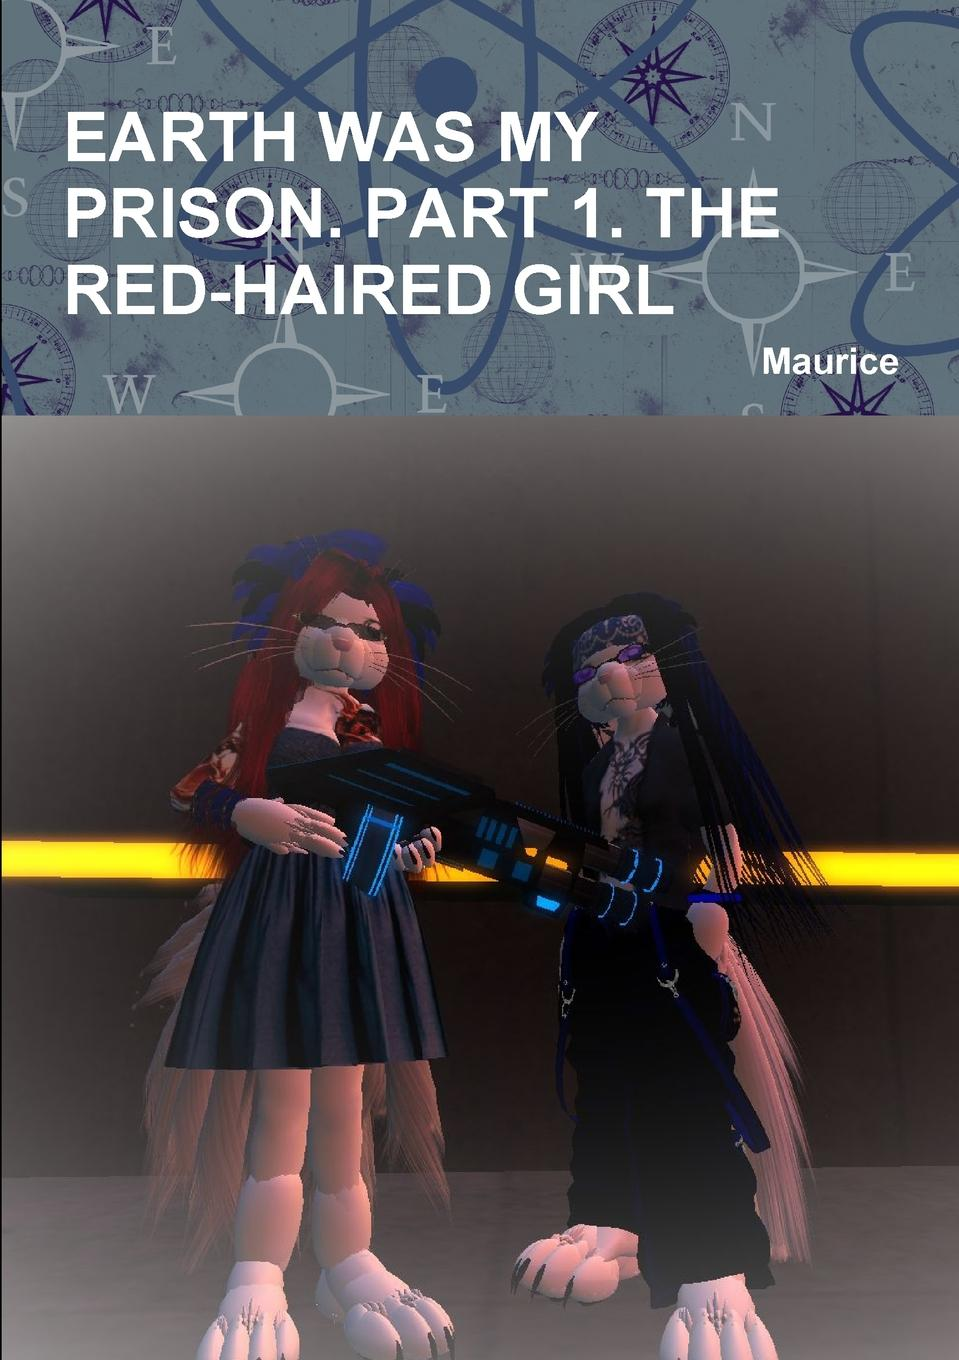 купить Maurice EARTH WAS MY PRISON. PART 1. THE RED-HAIRED GIRL онлайн